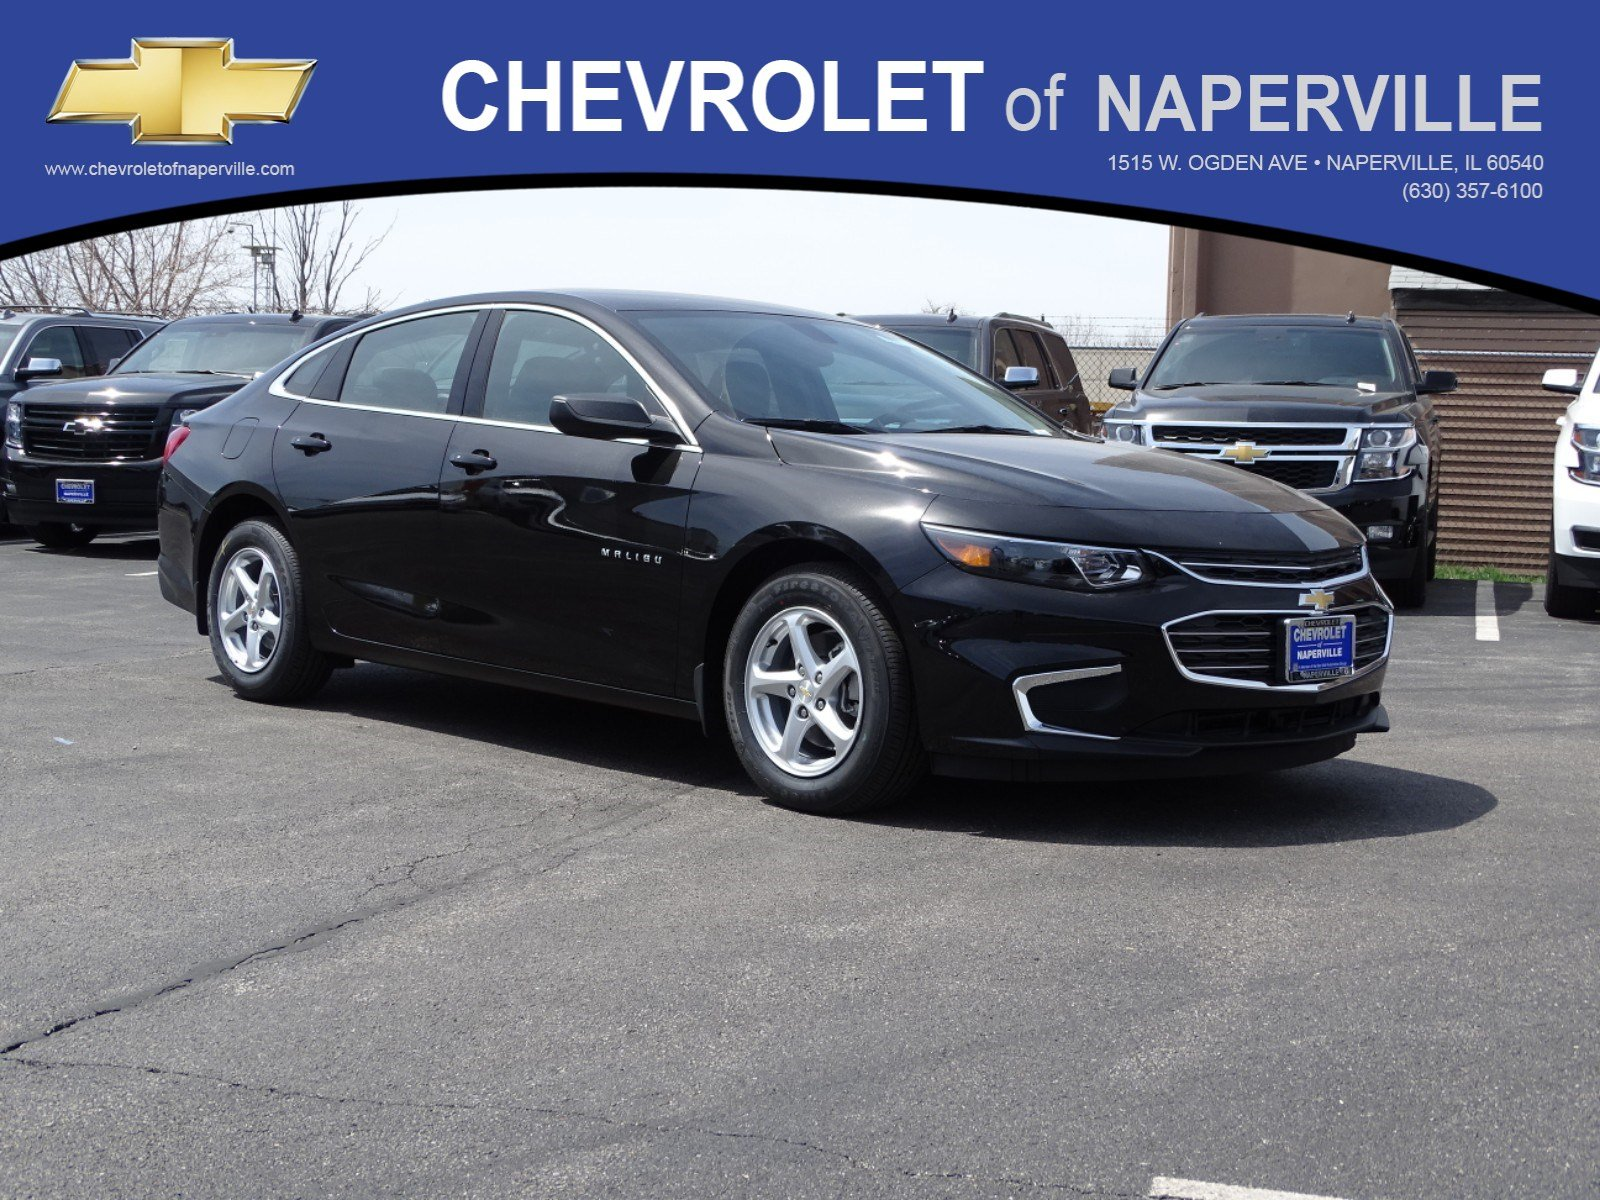 tahoe new sport in utility inventory chevrolet of naperville